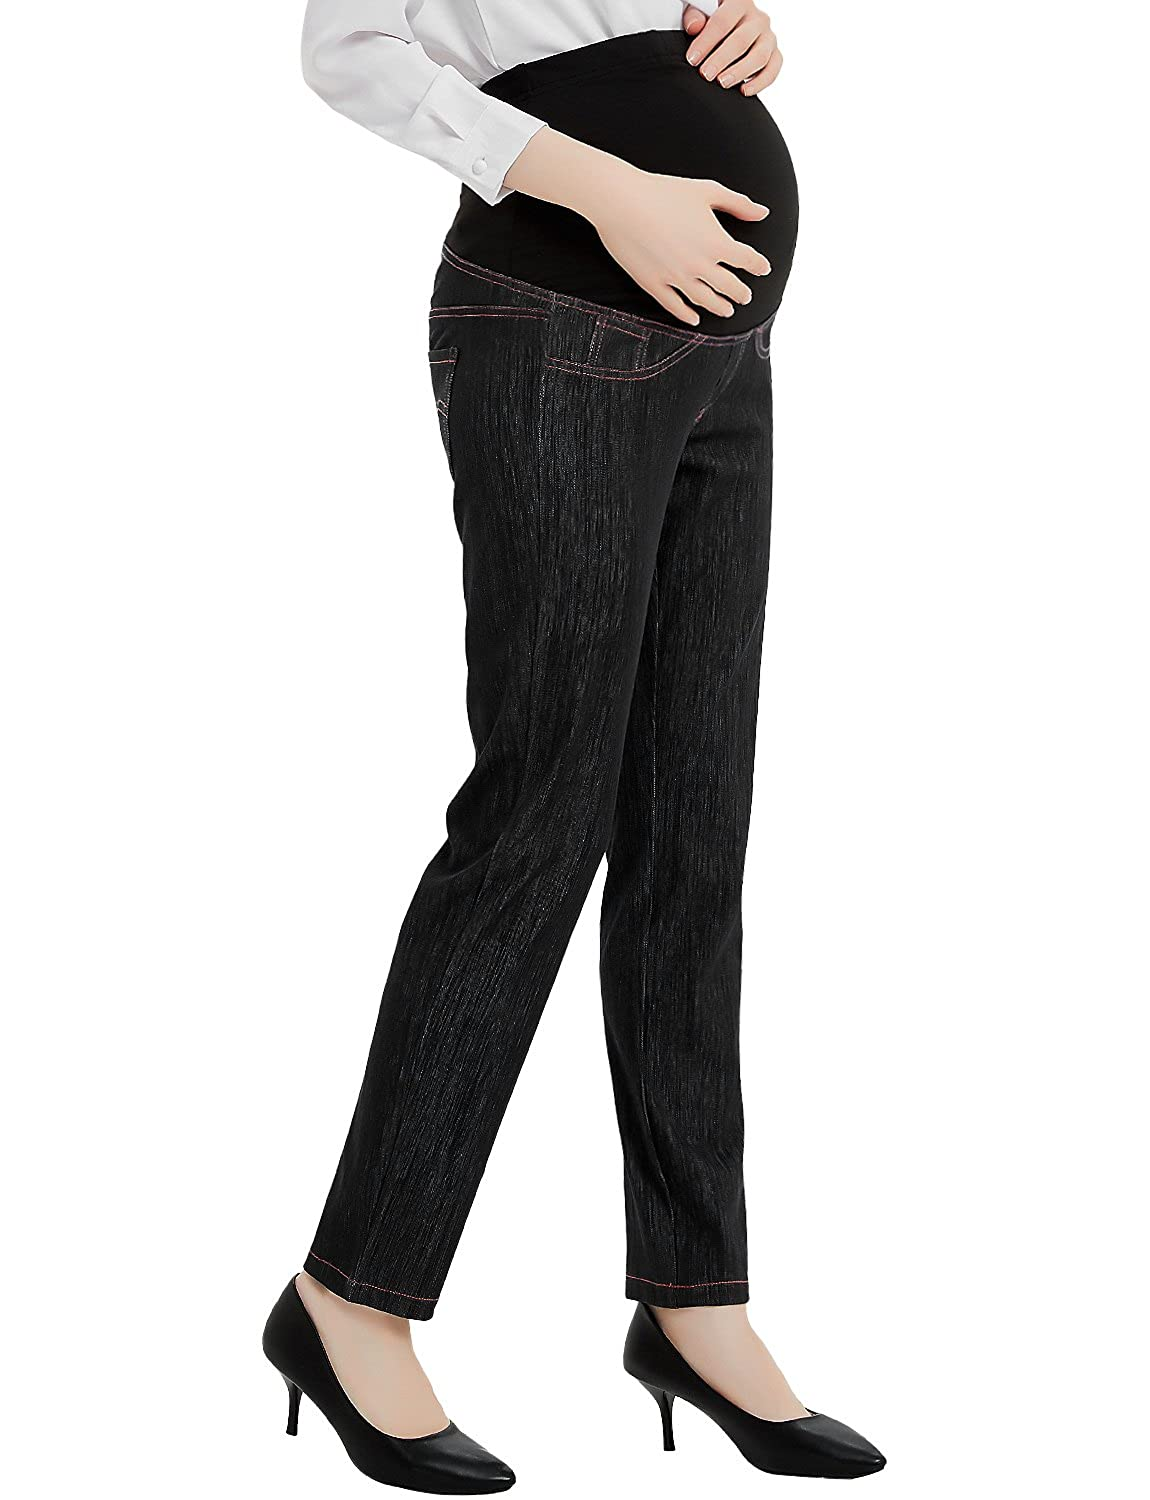 45dad49f403b2 Bhome Maternity Jeans Stretch High Waisted Pants, Dress Pants for Work  Career Office Pants at Amazon Women's Clothing store: